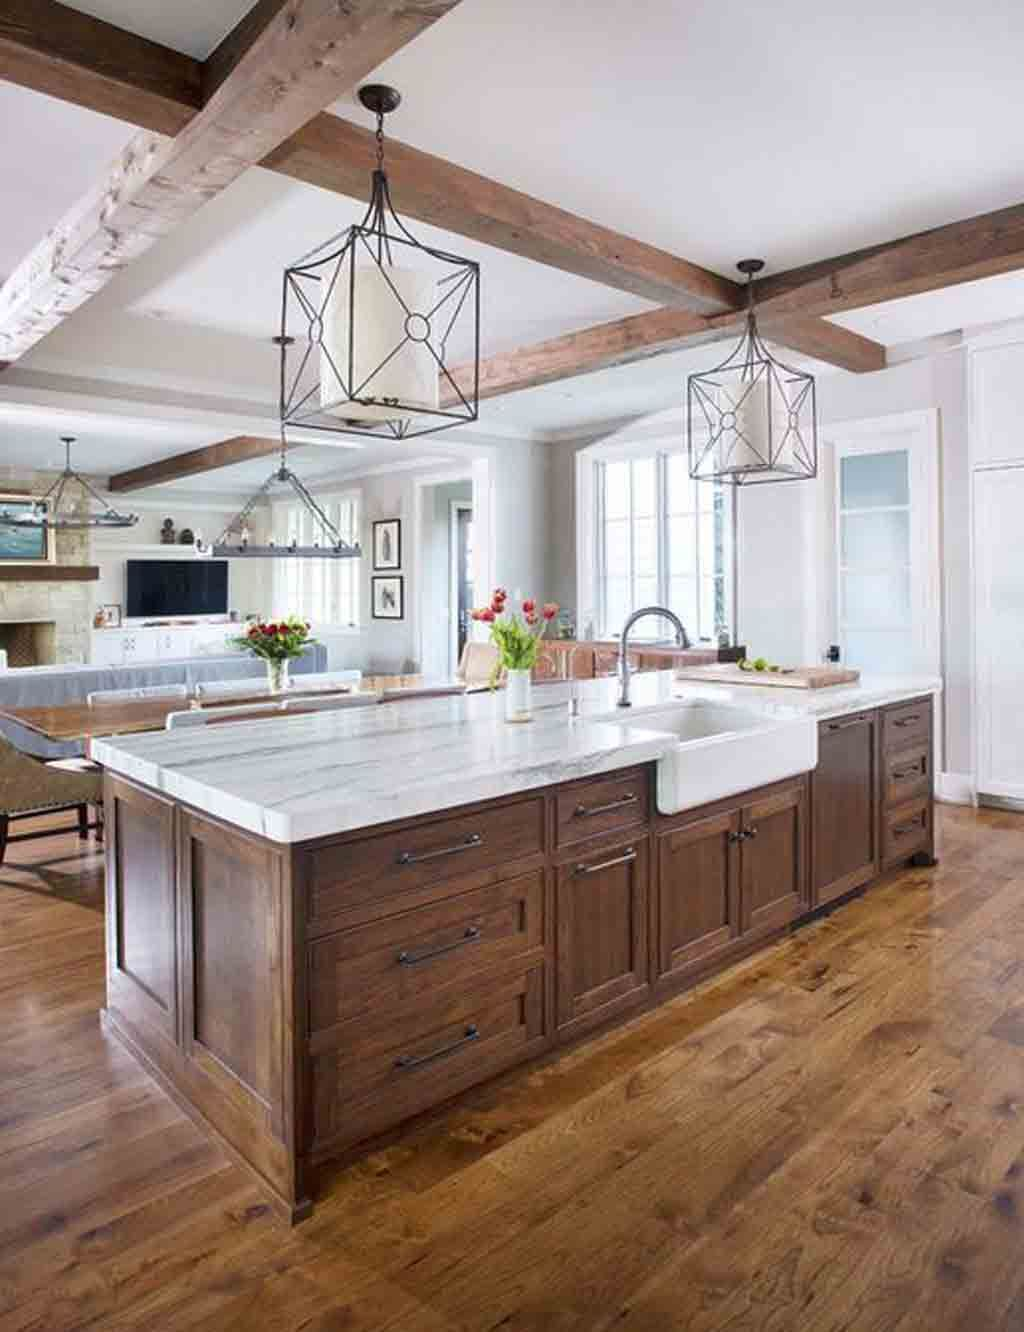 Kitchen inspiration #kitchen